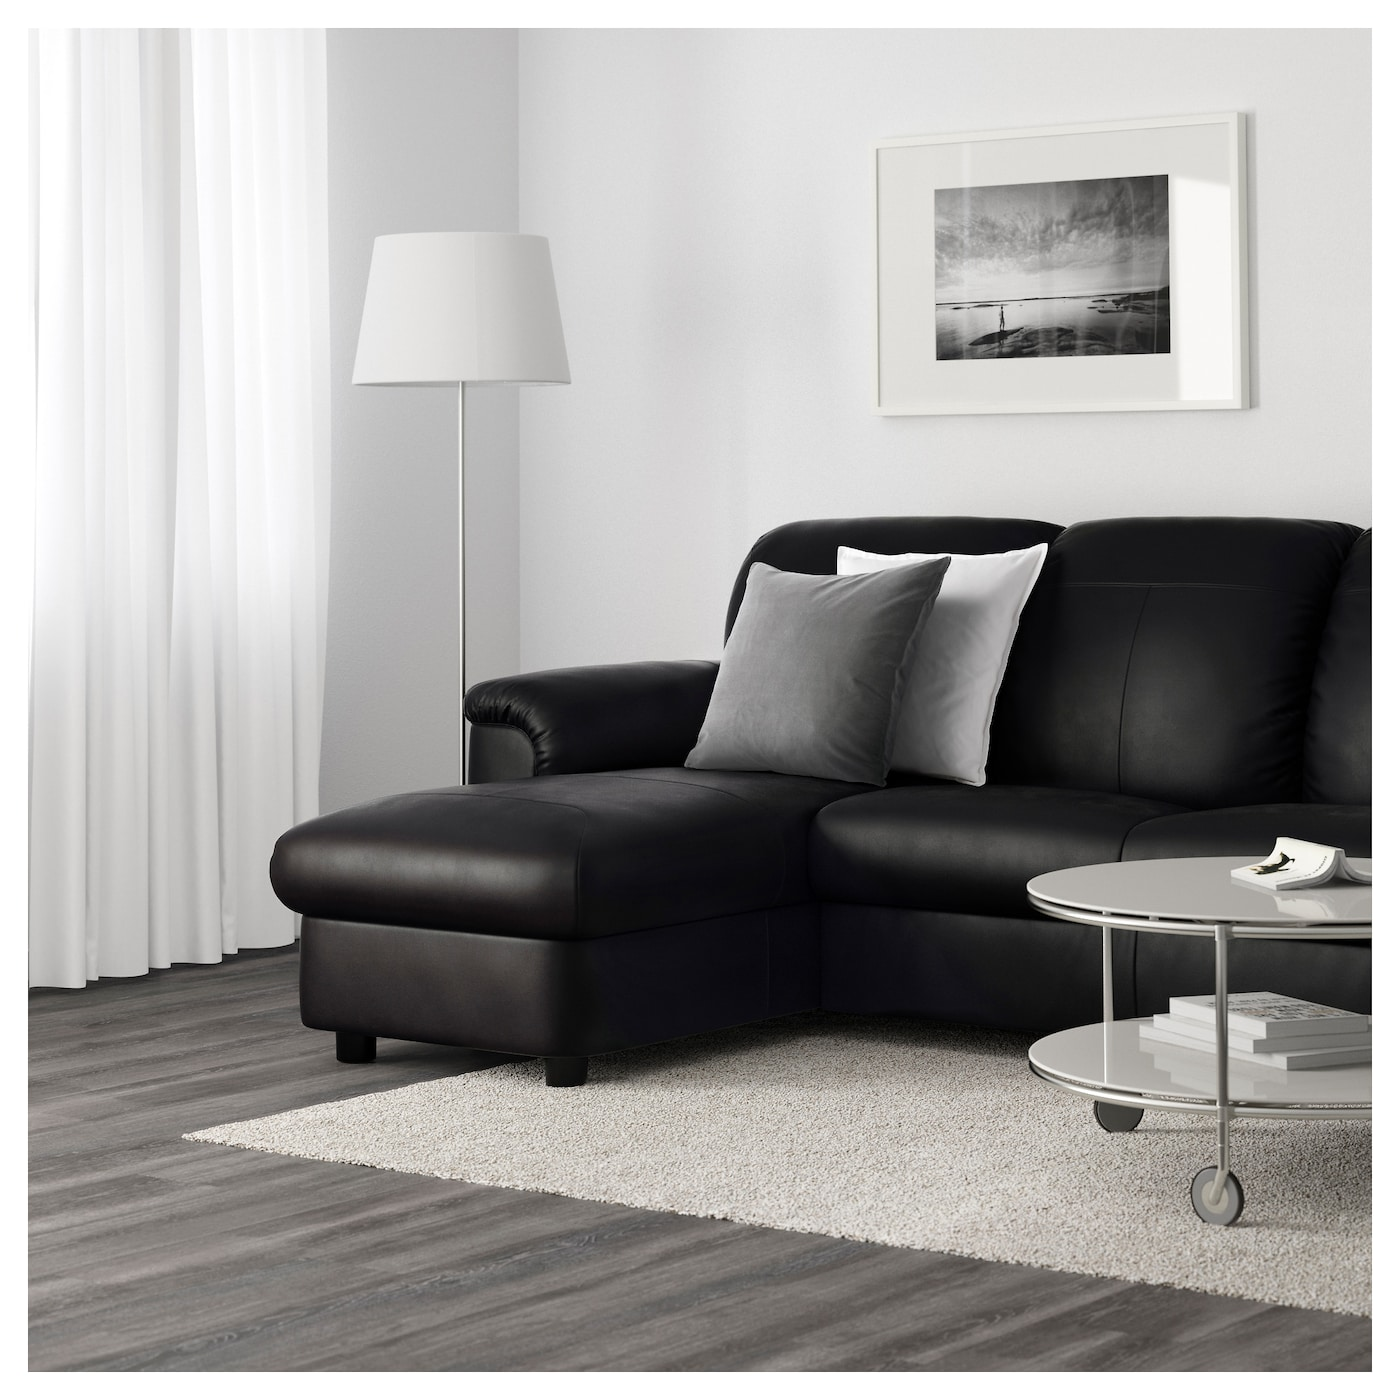 Timsfors two seat sofa with chaise longue mjuk kimstad for Chaise longue couverte ikea